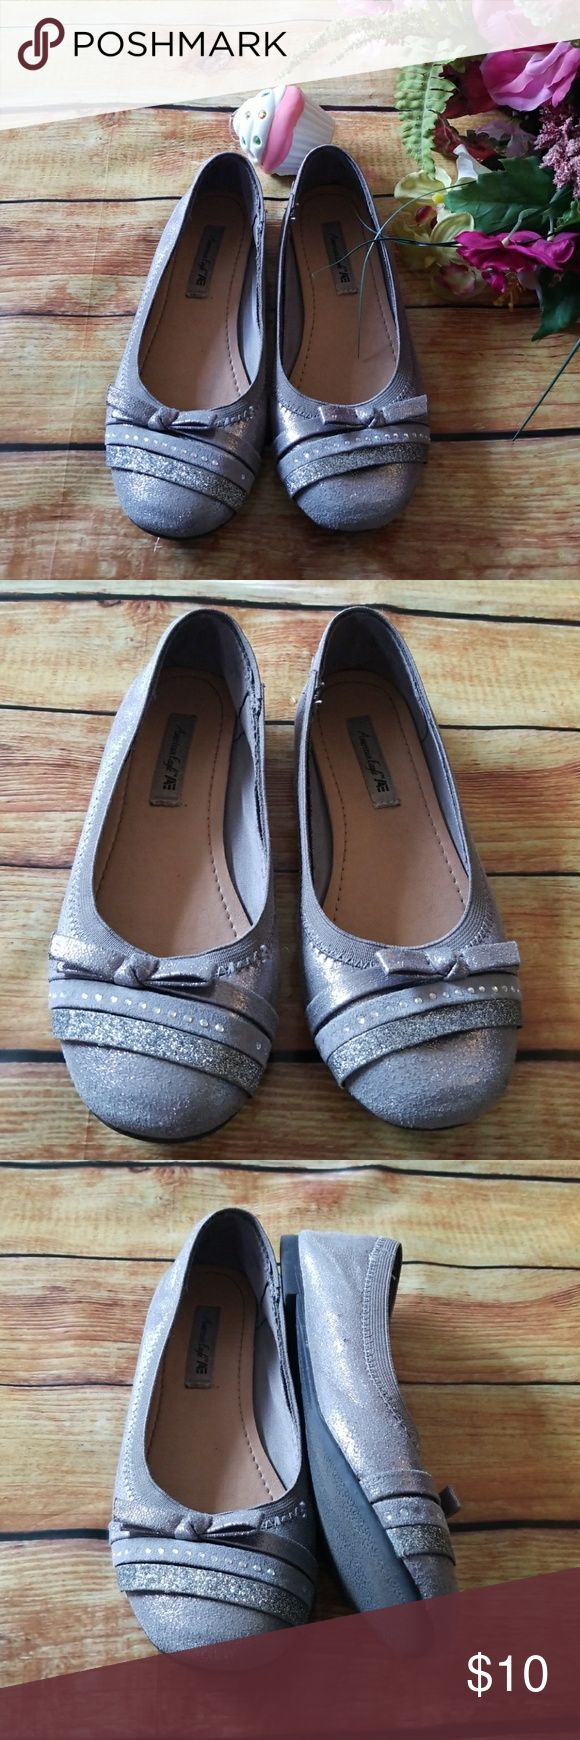 🌹Girls Gray Sparkle Flats, Size 2, American Eagle Gray/Silver Sparkle/ Glitter shoes. American Eagle,  Size 2. In good condition. Pre-loved💕 American Eagle Shoes Dress Shoes